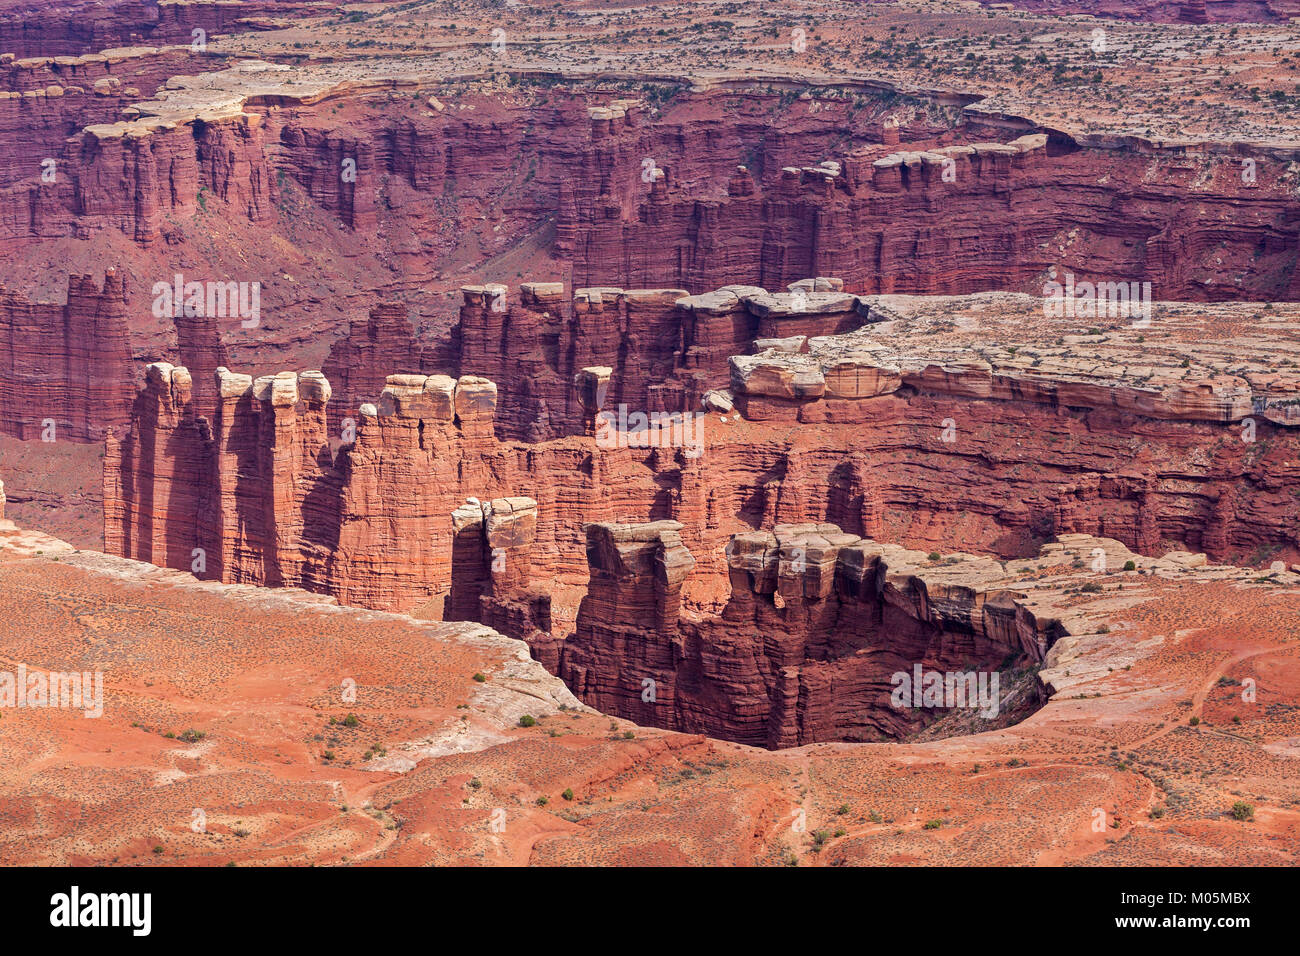 A view of the Grand View Point Overlook in the Canyonlands National Park in Utah. - Stock Image